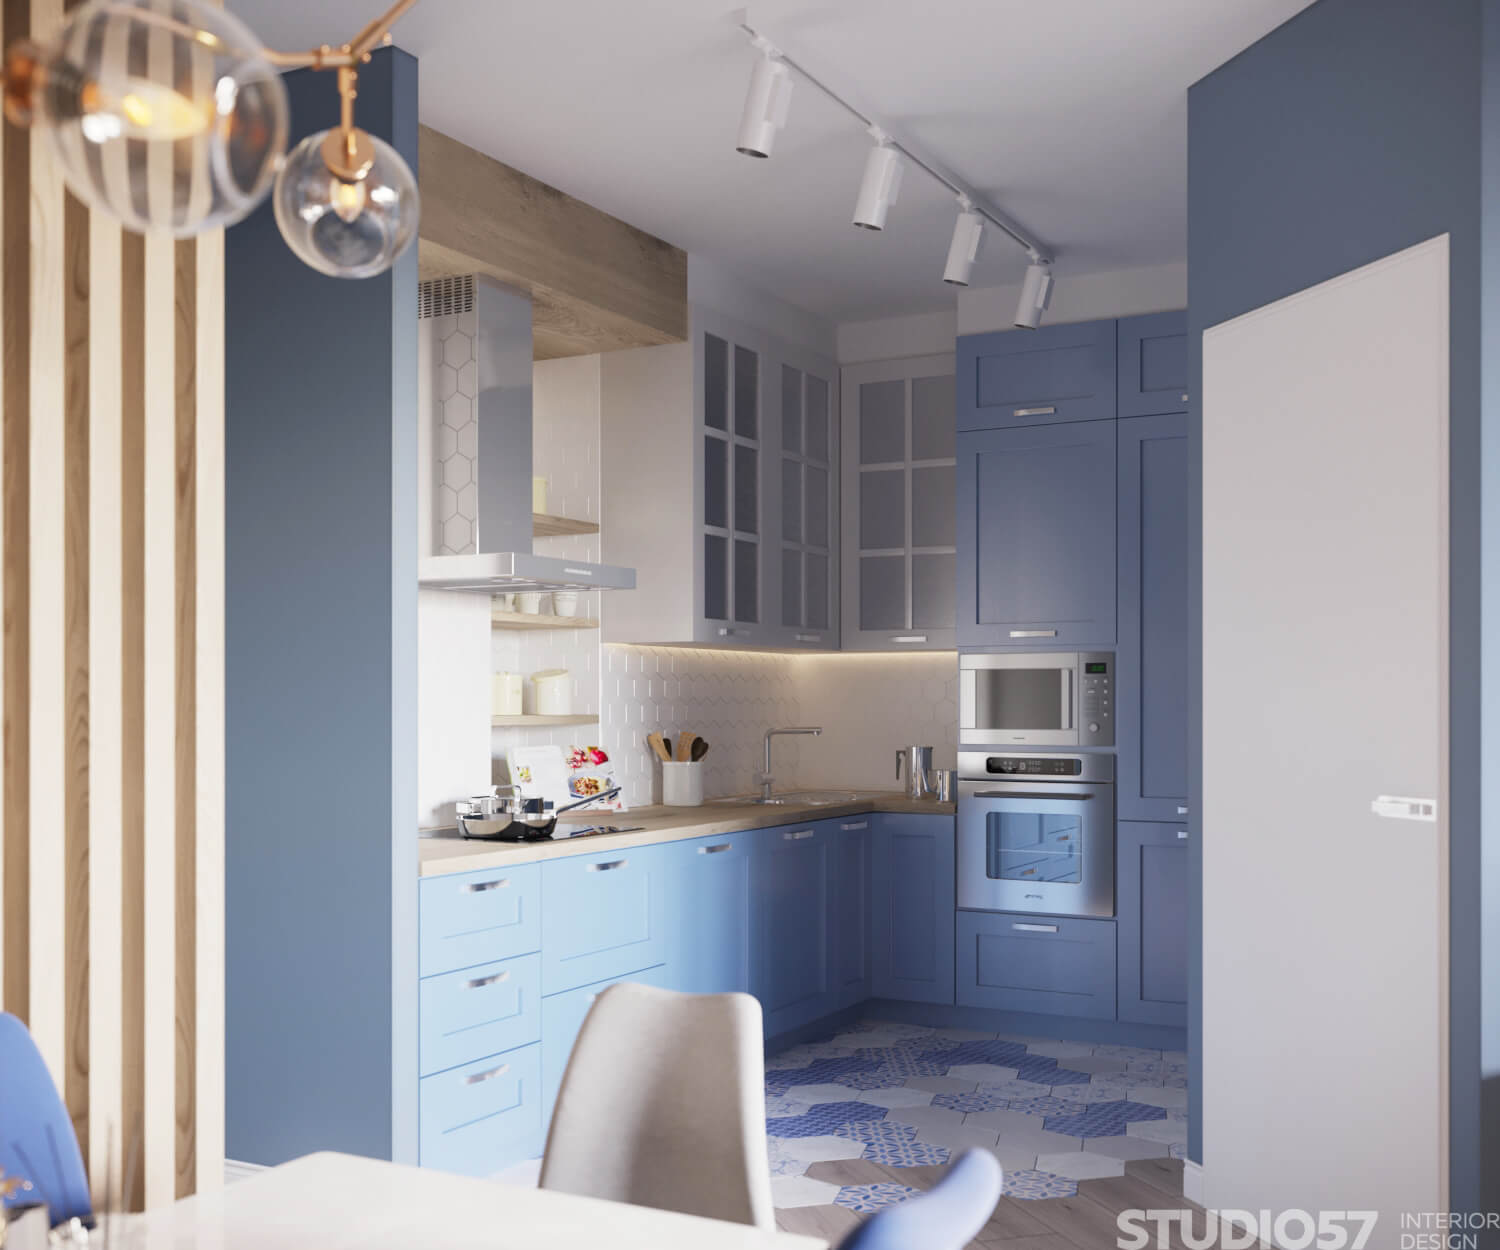 Kitchen design for a one-room apartment